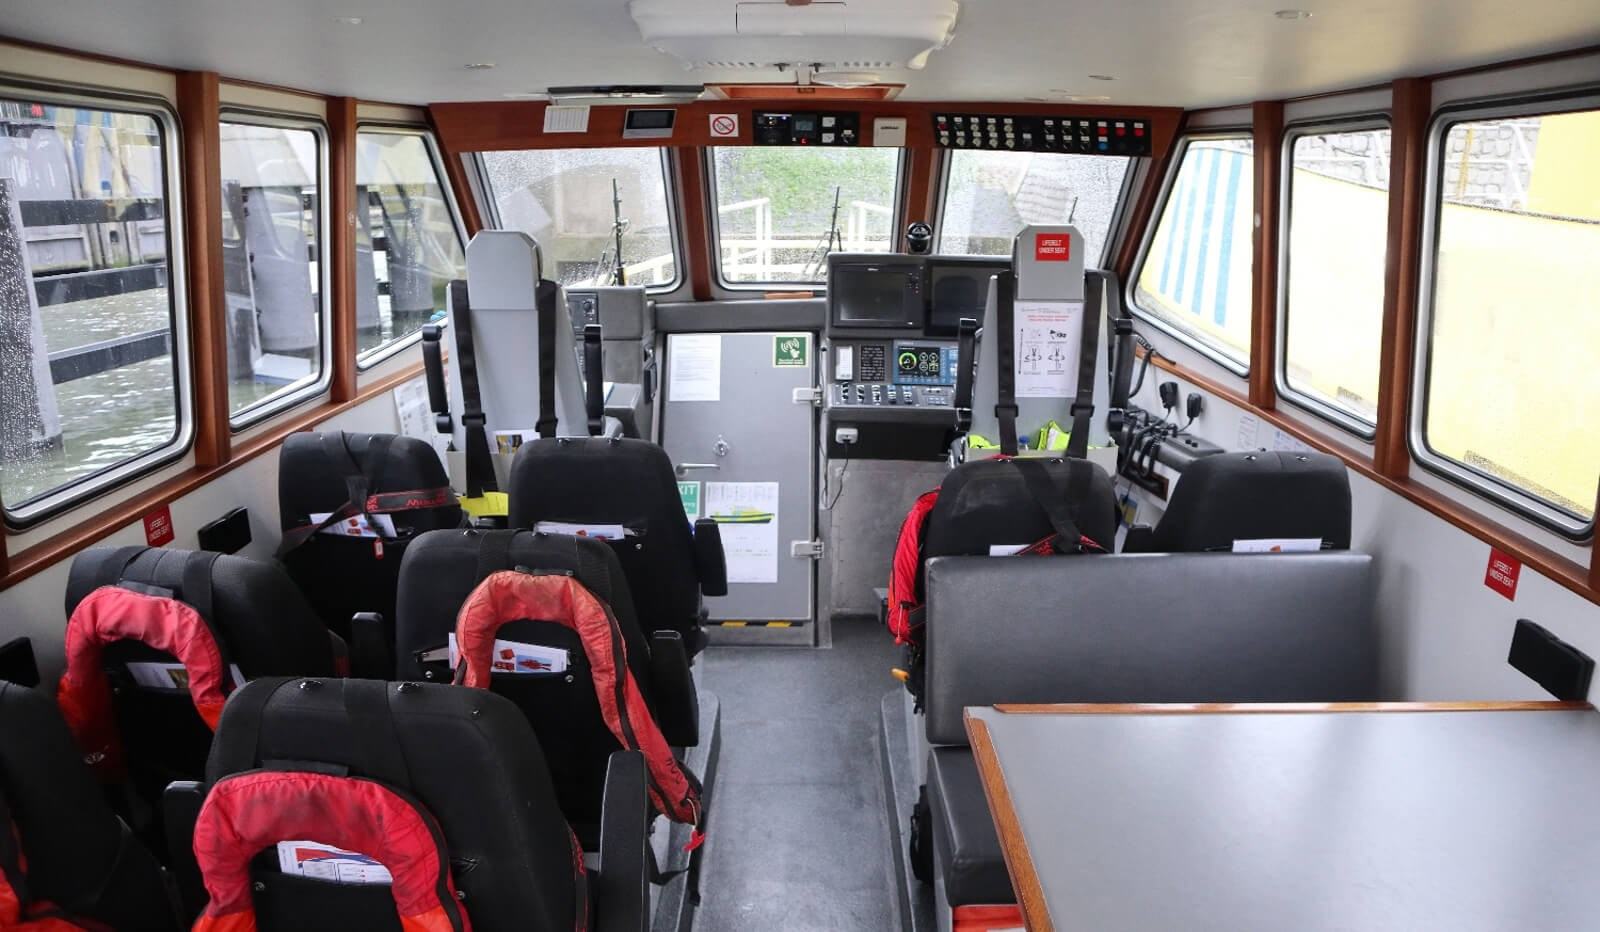 Used Pilot/Crew Tender for sale to transfer personnel and cargo